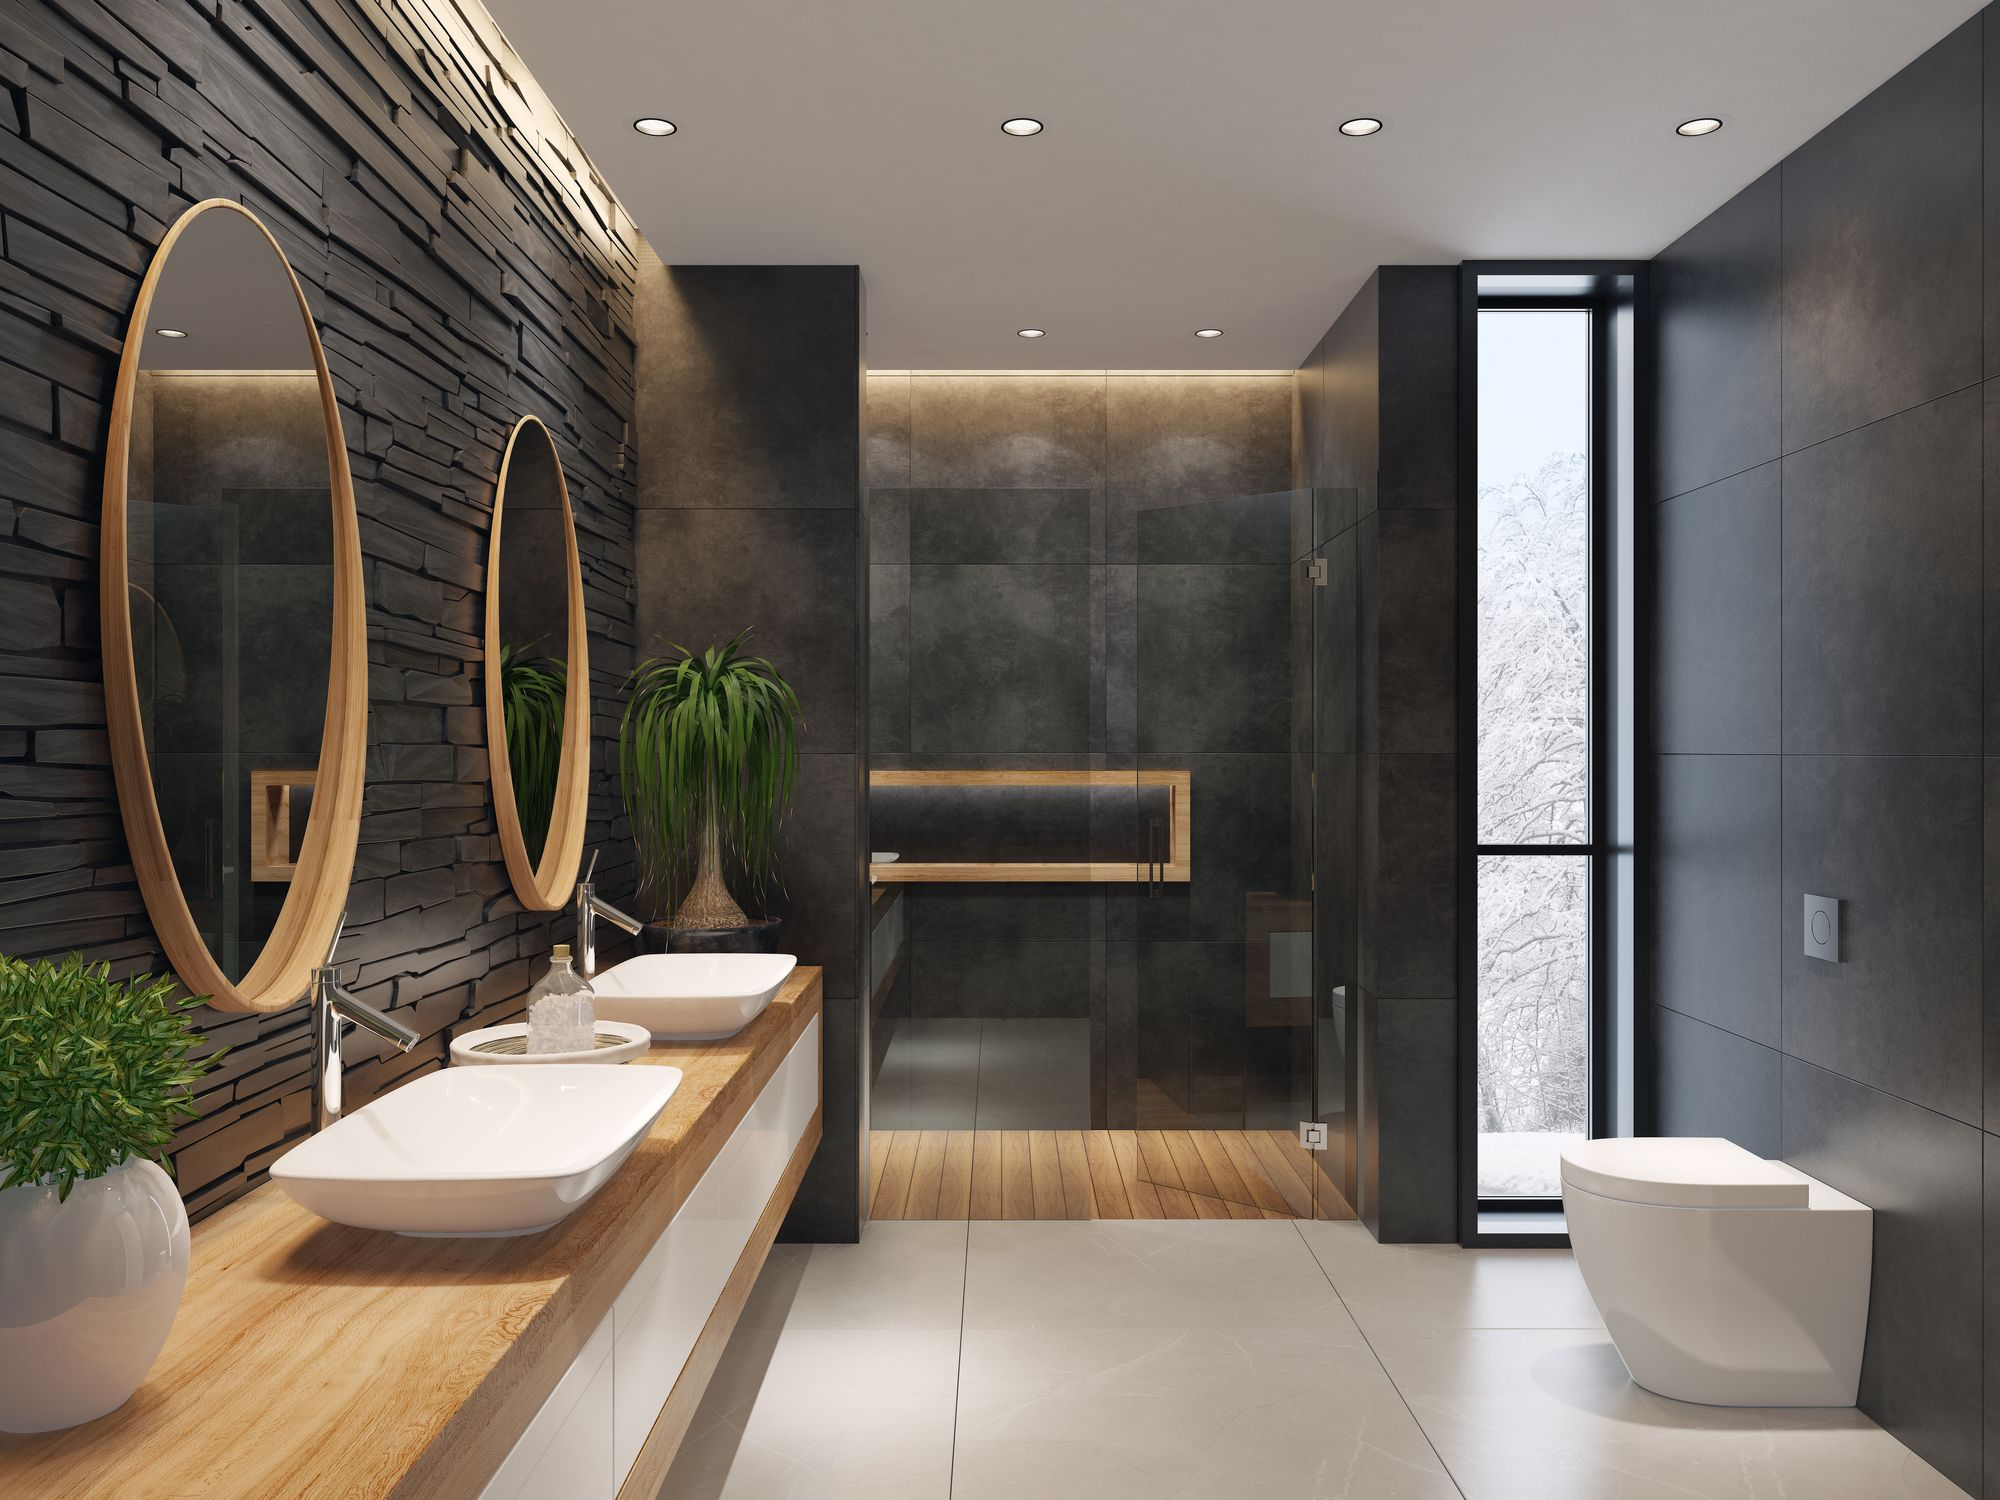 How Much Does A Bathroom Renovation Cost Hipages Com Au In 2020 Bathroom Trends Latest Bathroom Bathroom Lighting Trends